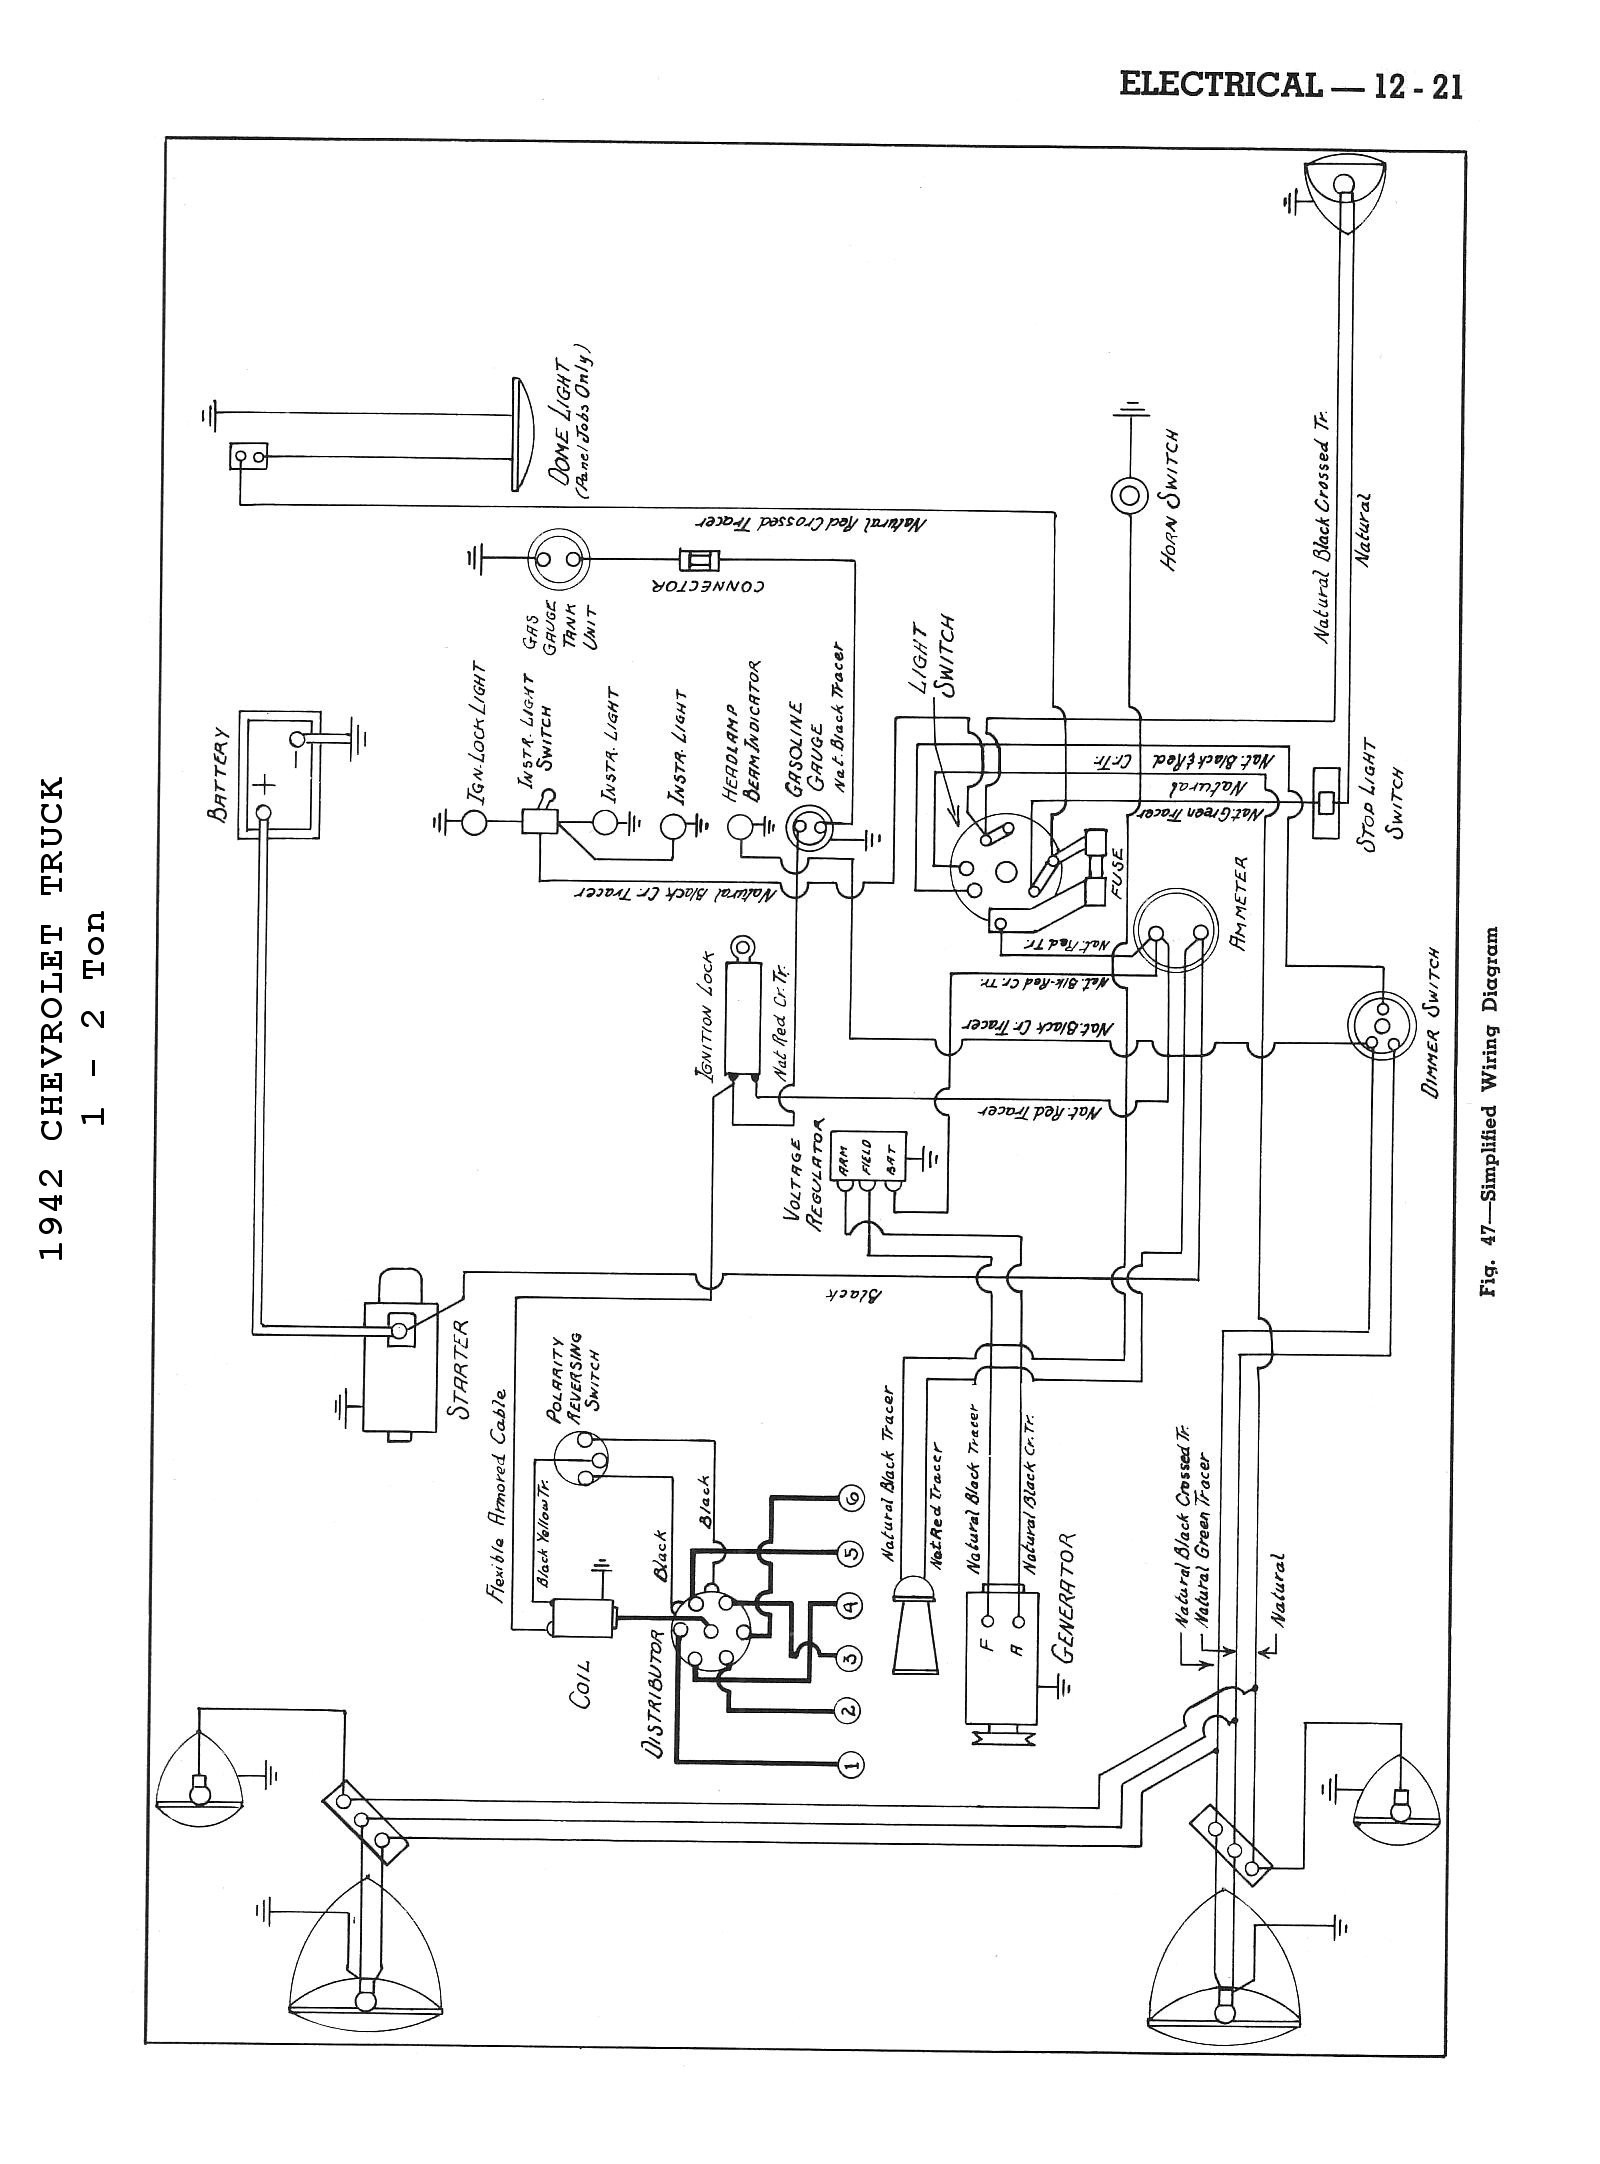 1963 Chevrolet Truck Wiring Diagram